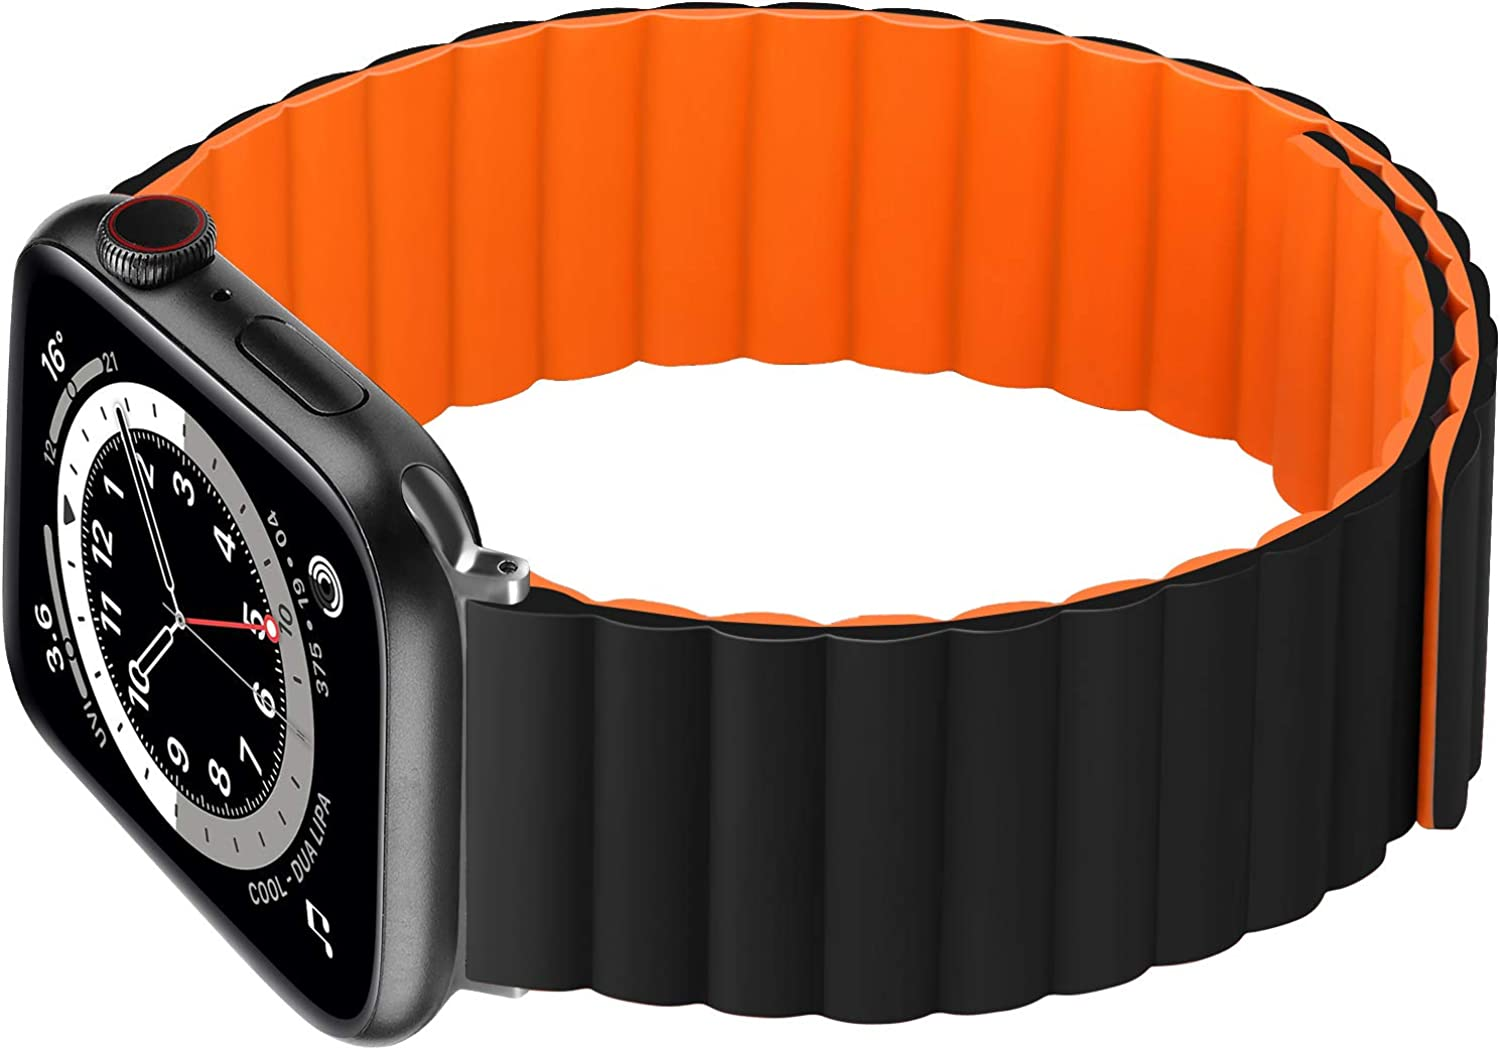 Silicone Magnetic Watch Band Compatible for Apple Watch 38 40 42 44mm Slim Soft Adjustable Loop Straps Premium Wristbands with Strong Magnetic Closure Replacement Strap for iWatch SE Series 6 5 4 3 2 1 Women Men Double Colors by HOCHYN